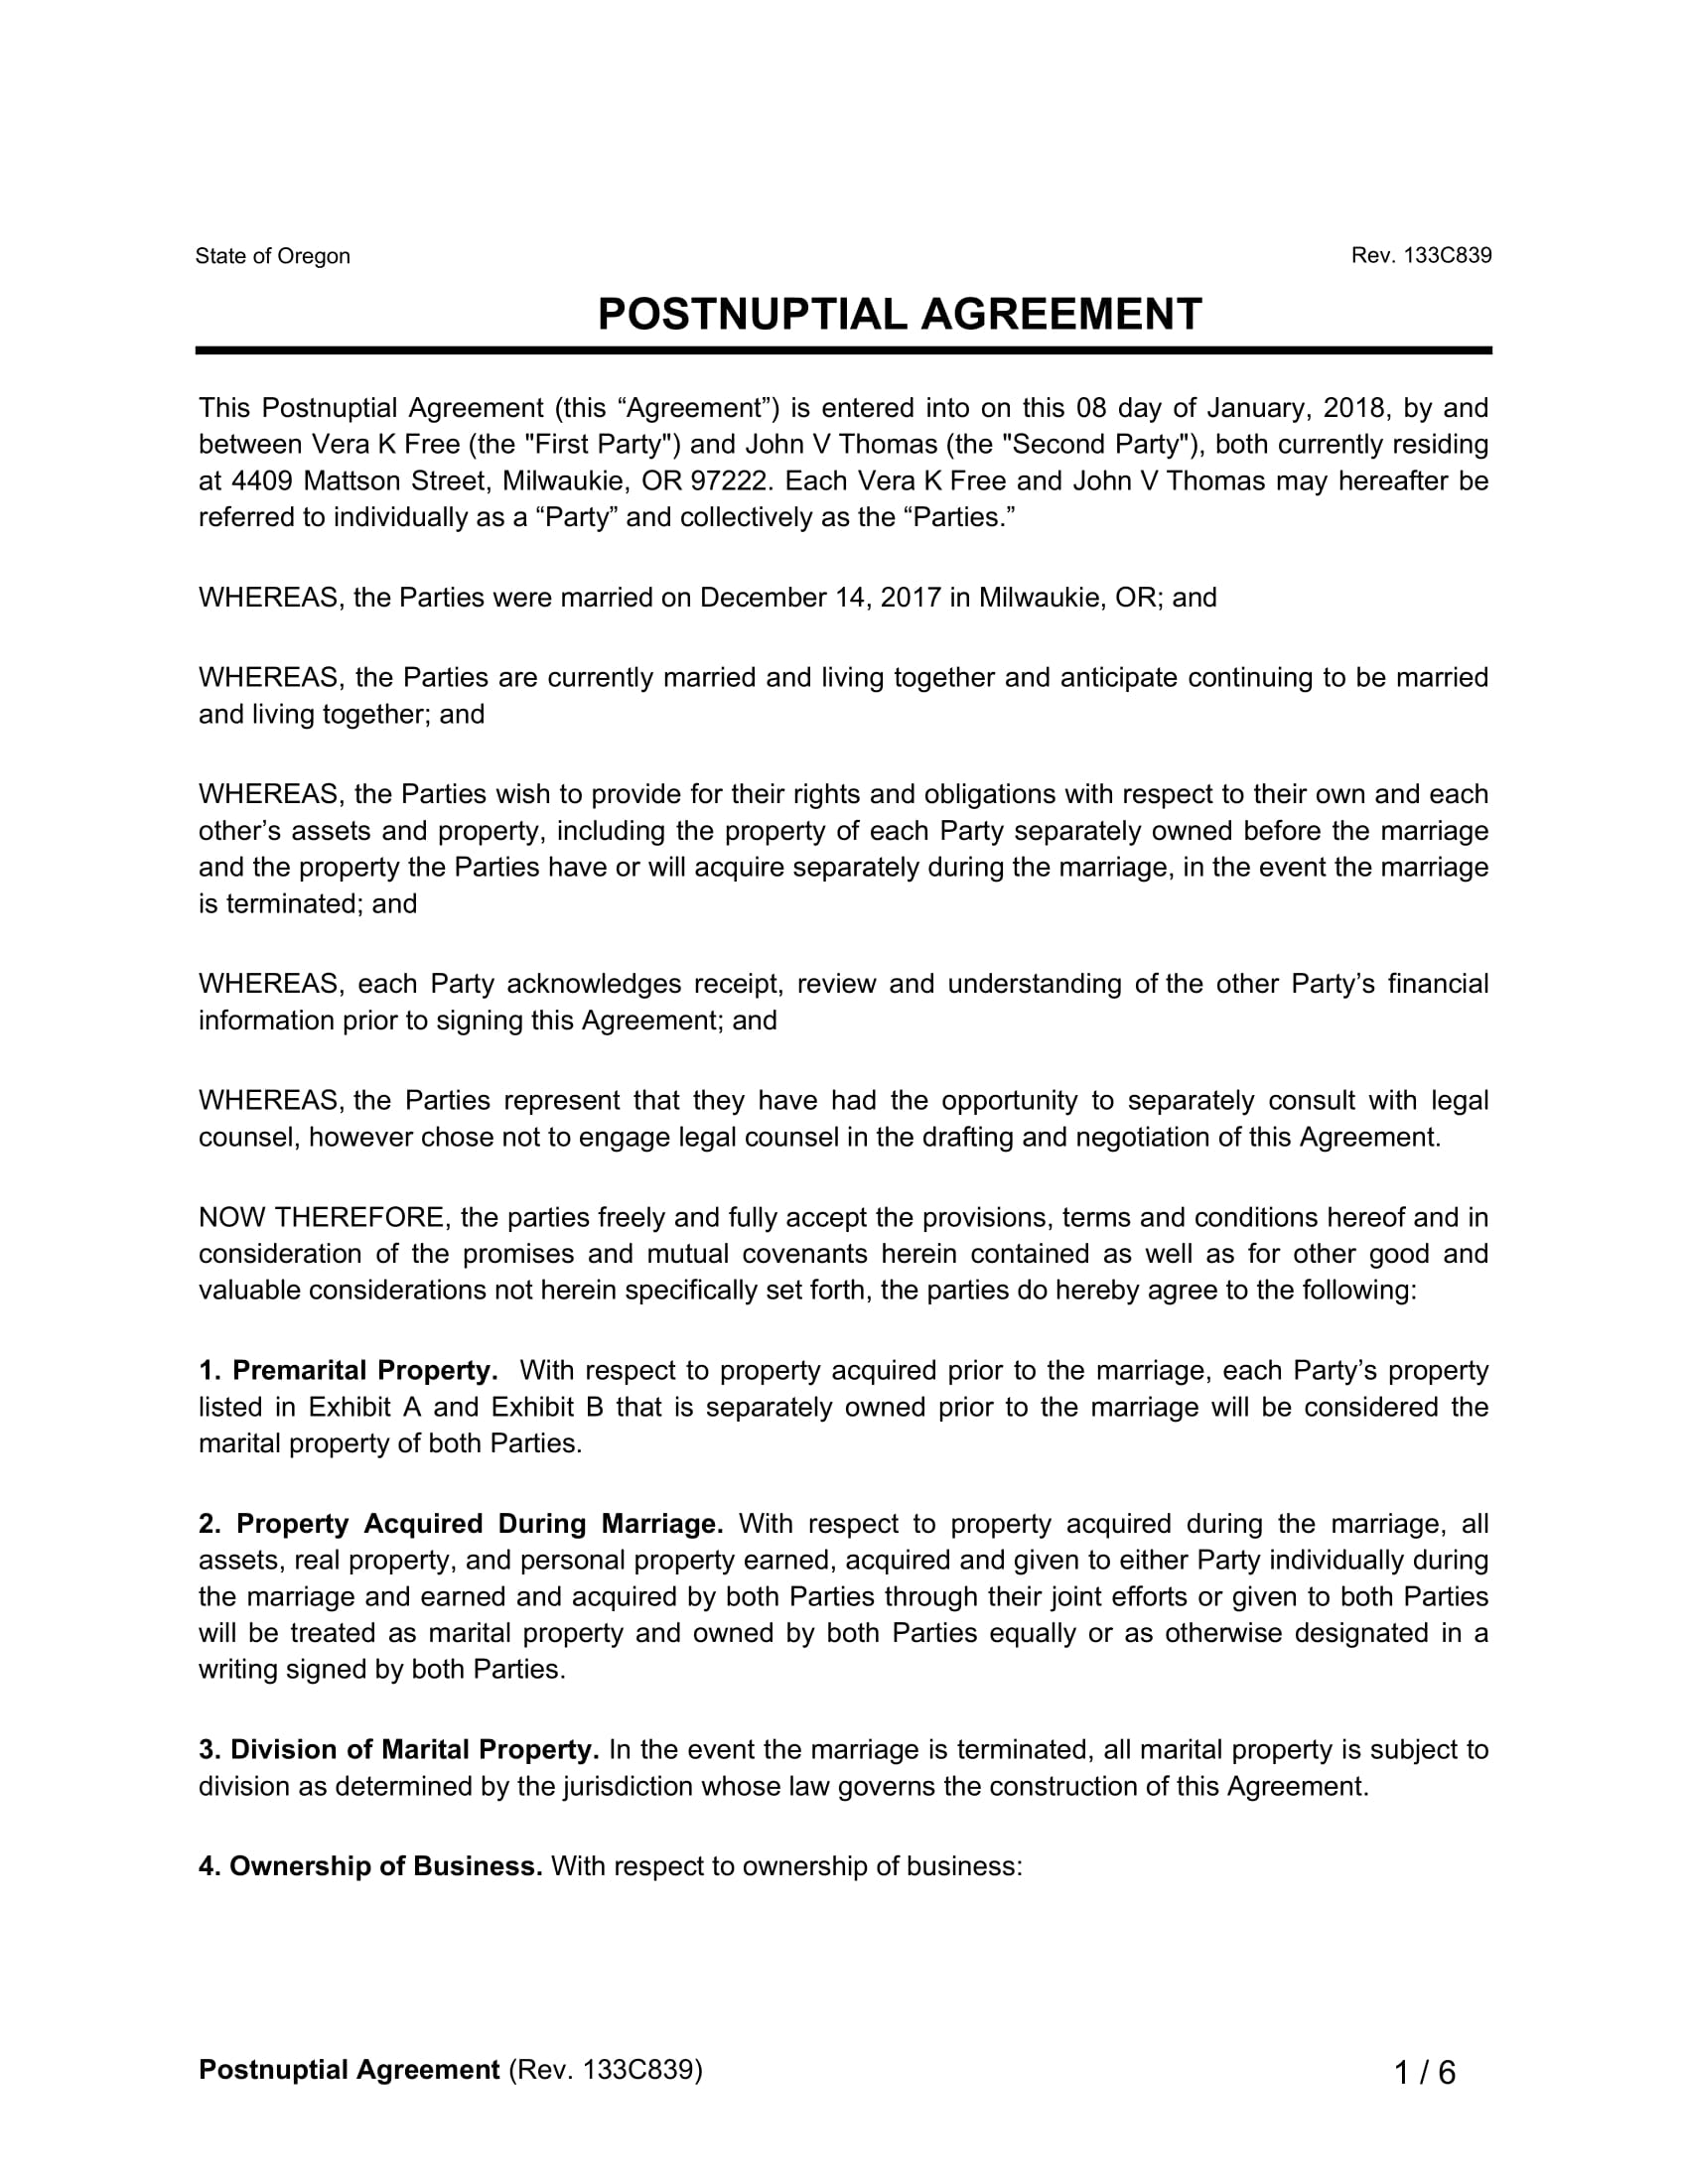 Post Nuptial Agreement Contract Forms Pdf